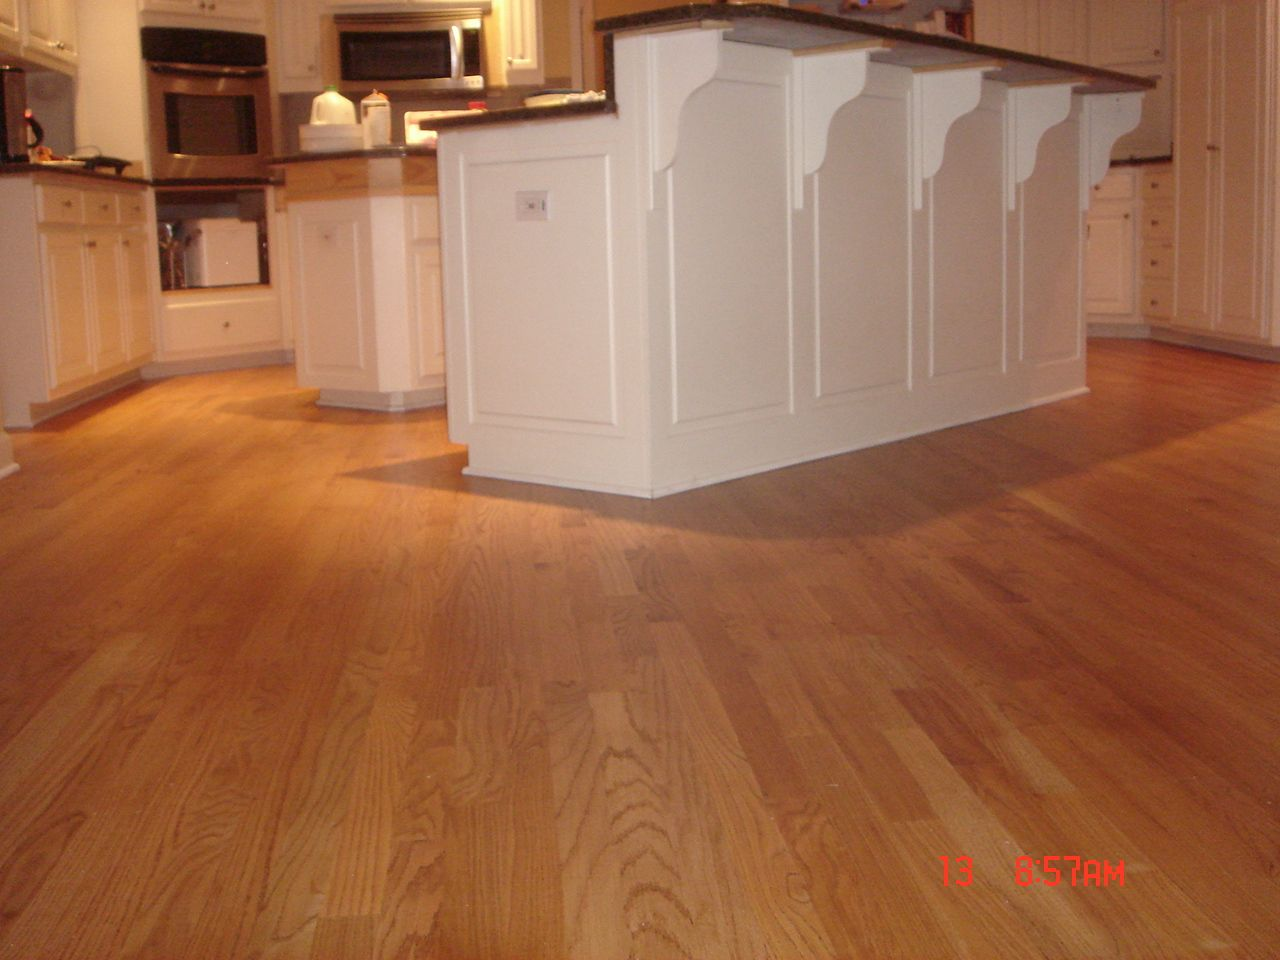 Corbels Are What Supports The Weight Of The Granite Countertop